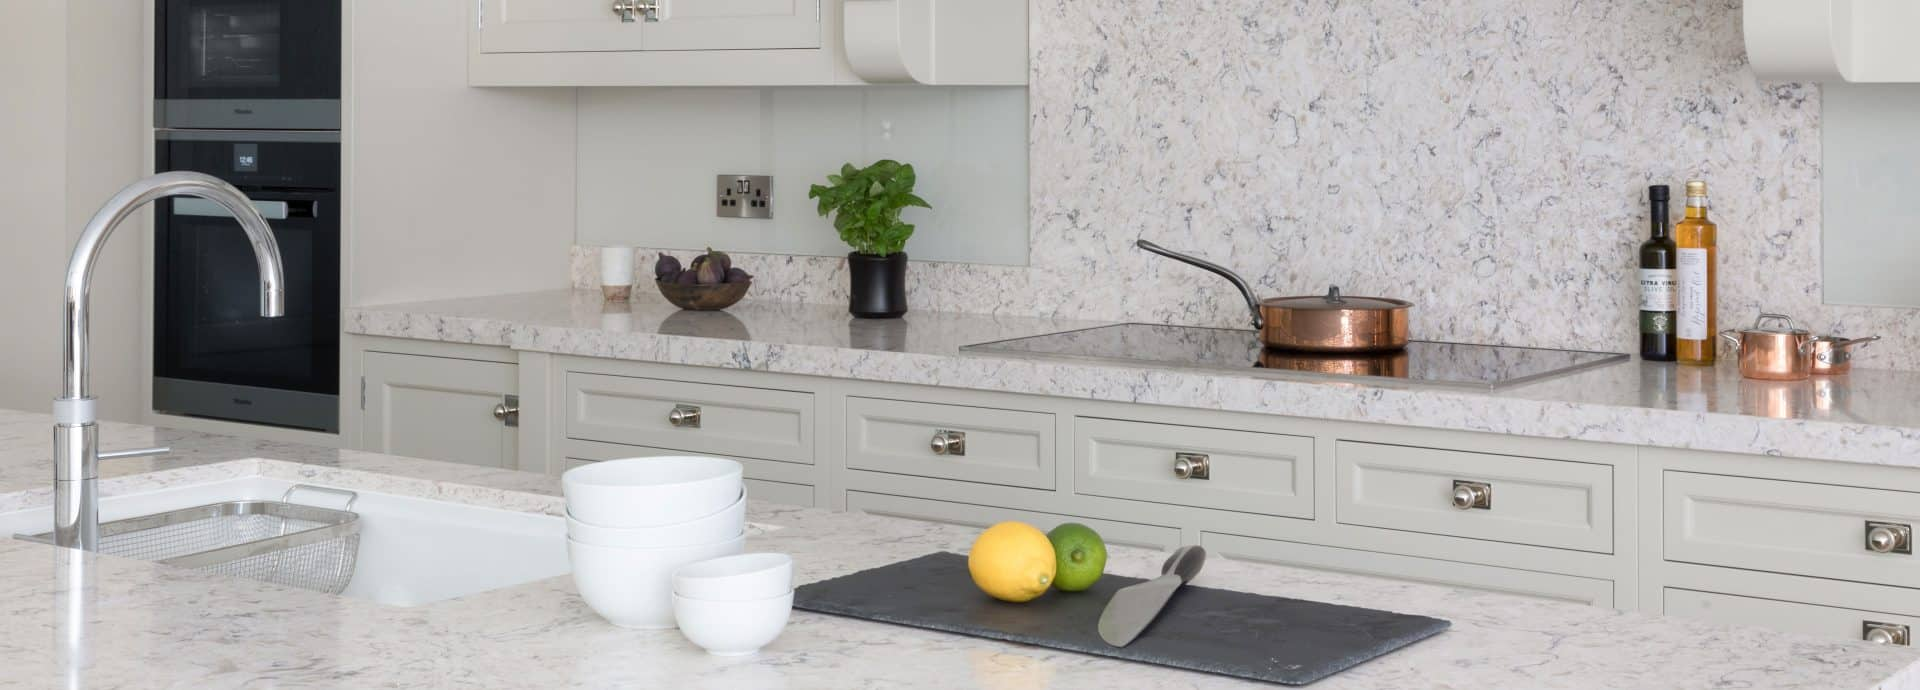 quartz countertops London